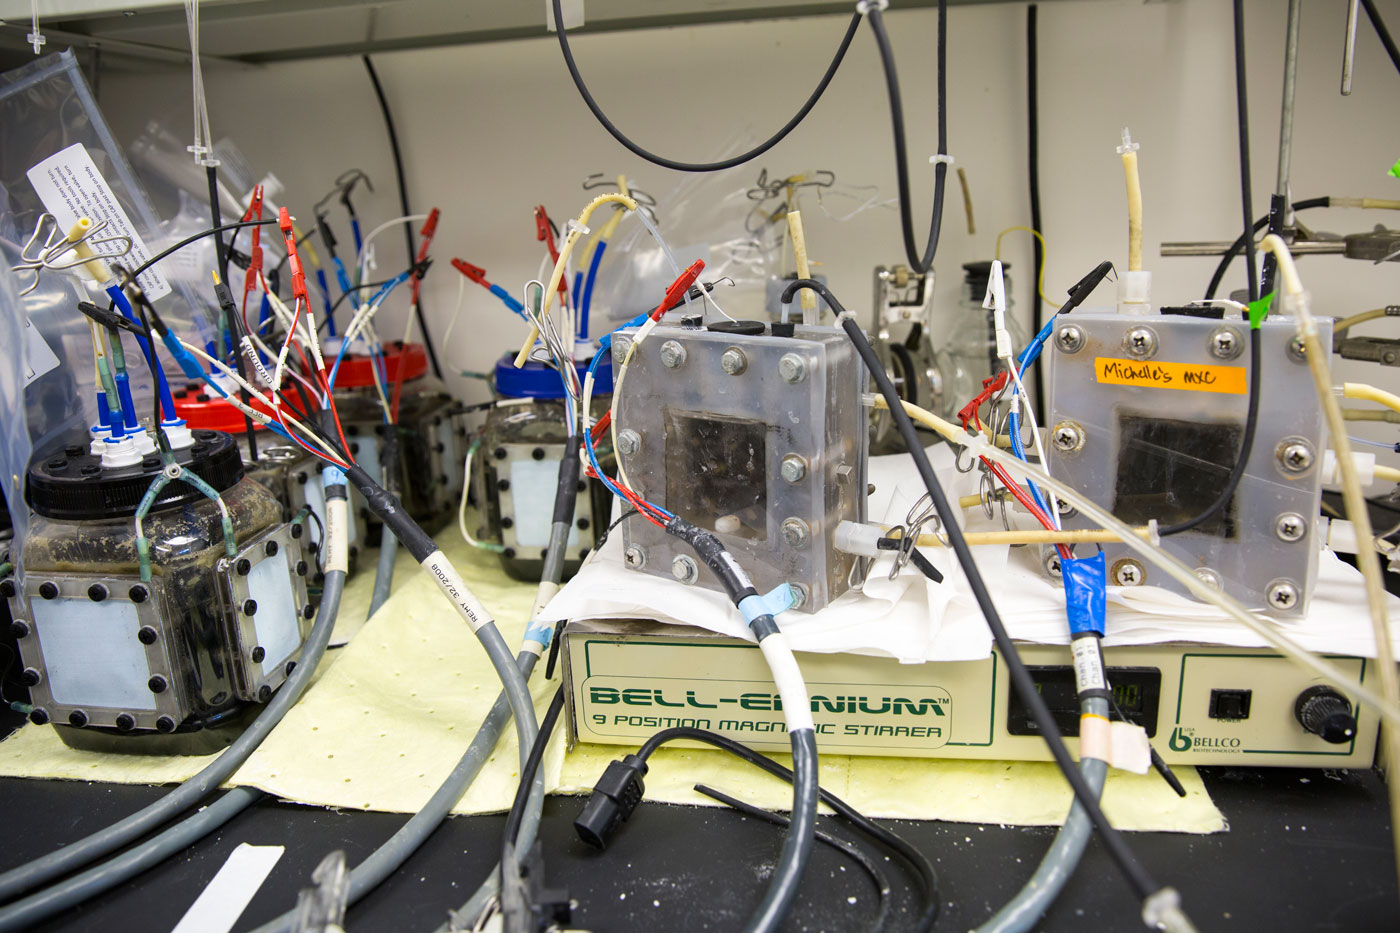 Bruce Rittmann's microbial electrochemical cells use bacteria to process organic waste in wastewater for decontamination or to produce electrical power, hydrogen gas or hydrogen peroxide.